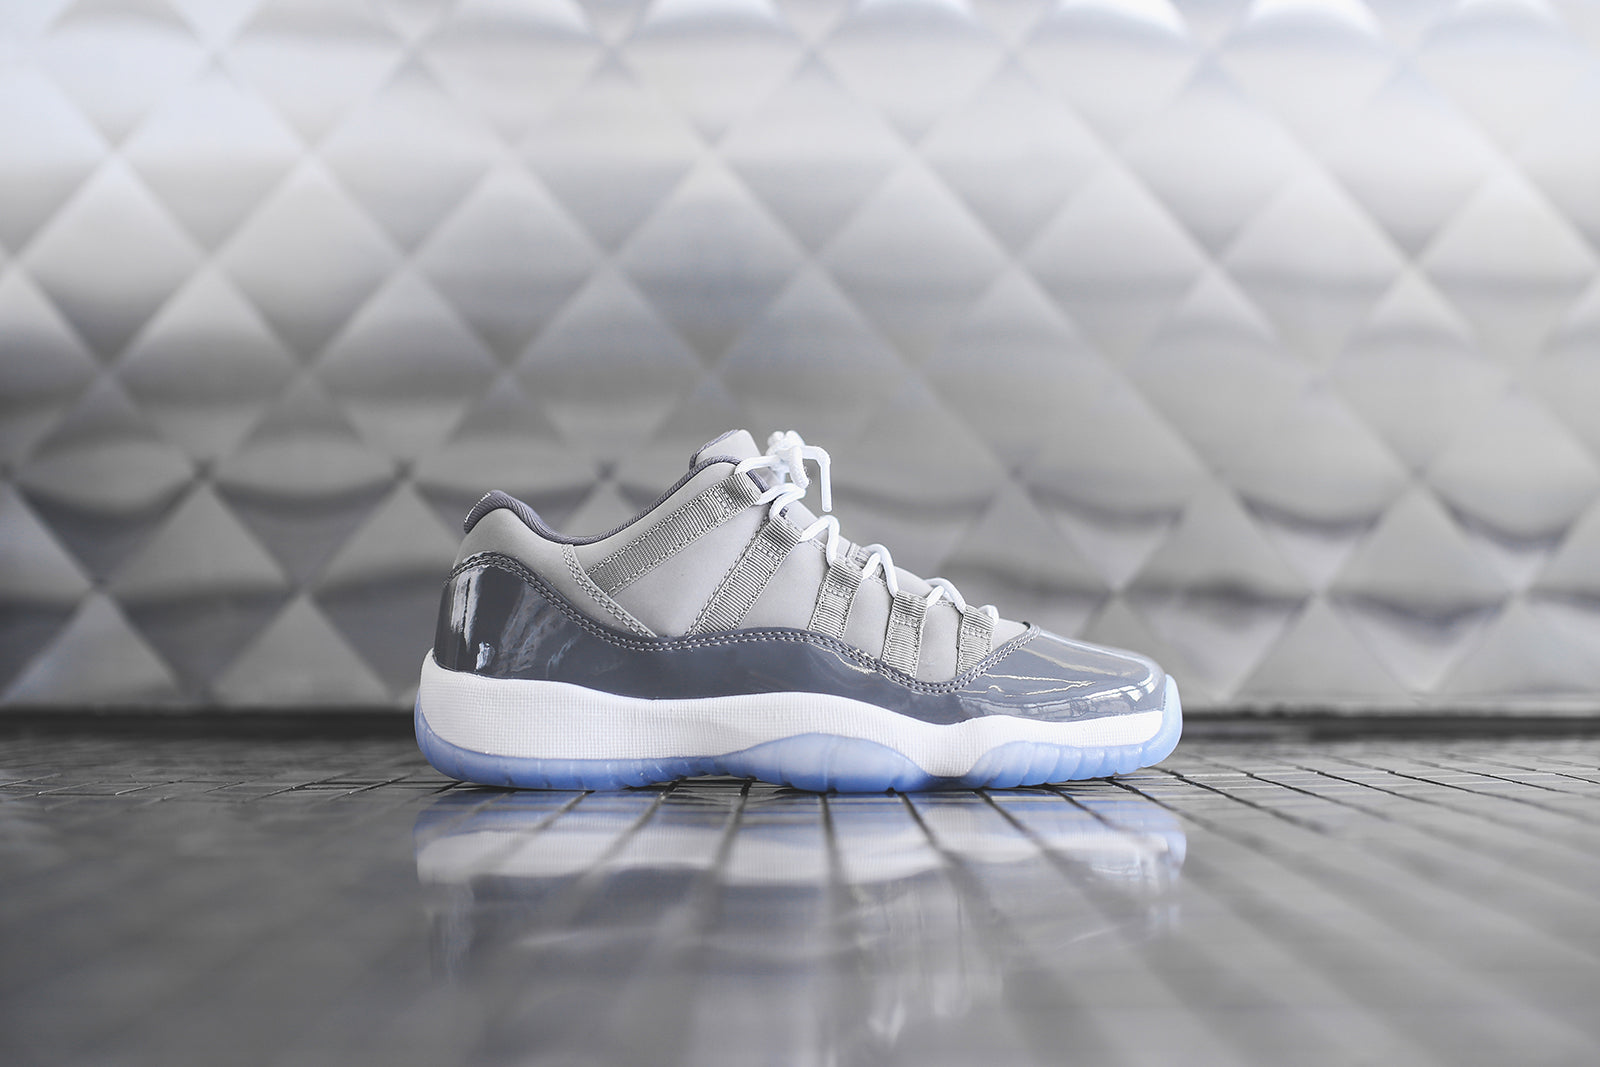 premium selection 3b145 bdbd5 Nike GS Air Jordan 11 Retro Low - Cool Grey – Kith